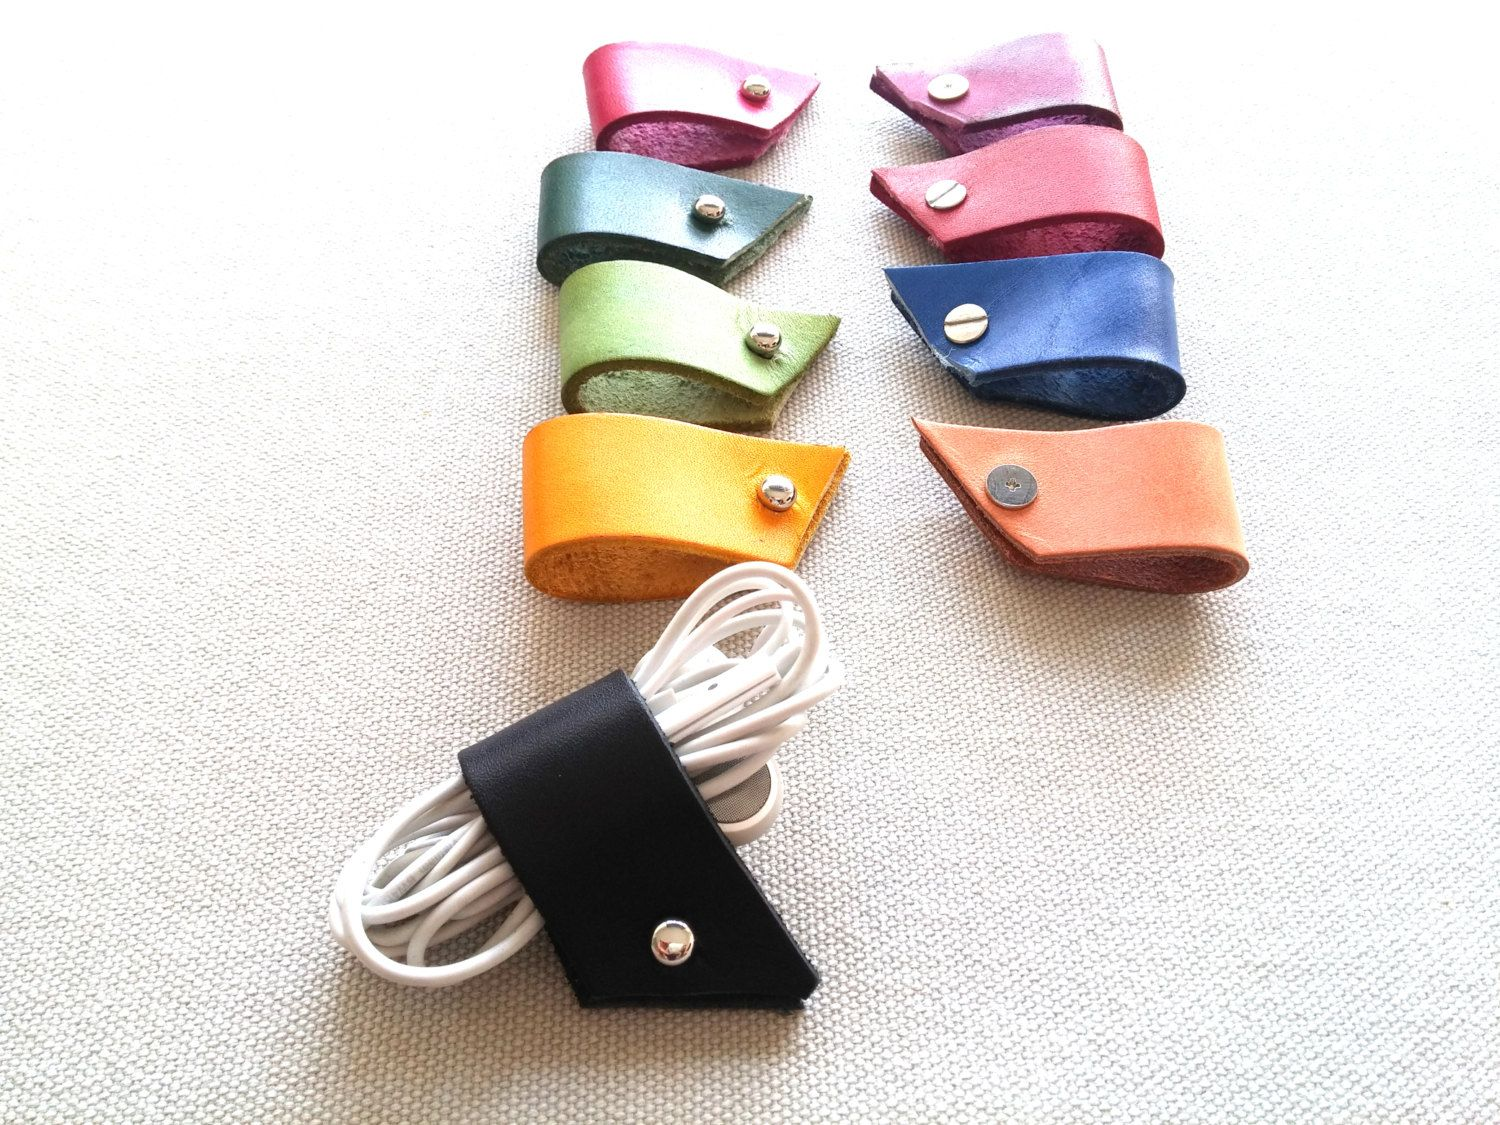 cord wrappers | cord wrappers - Headphone wrap, Cable keeper, Cord ...